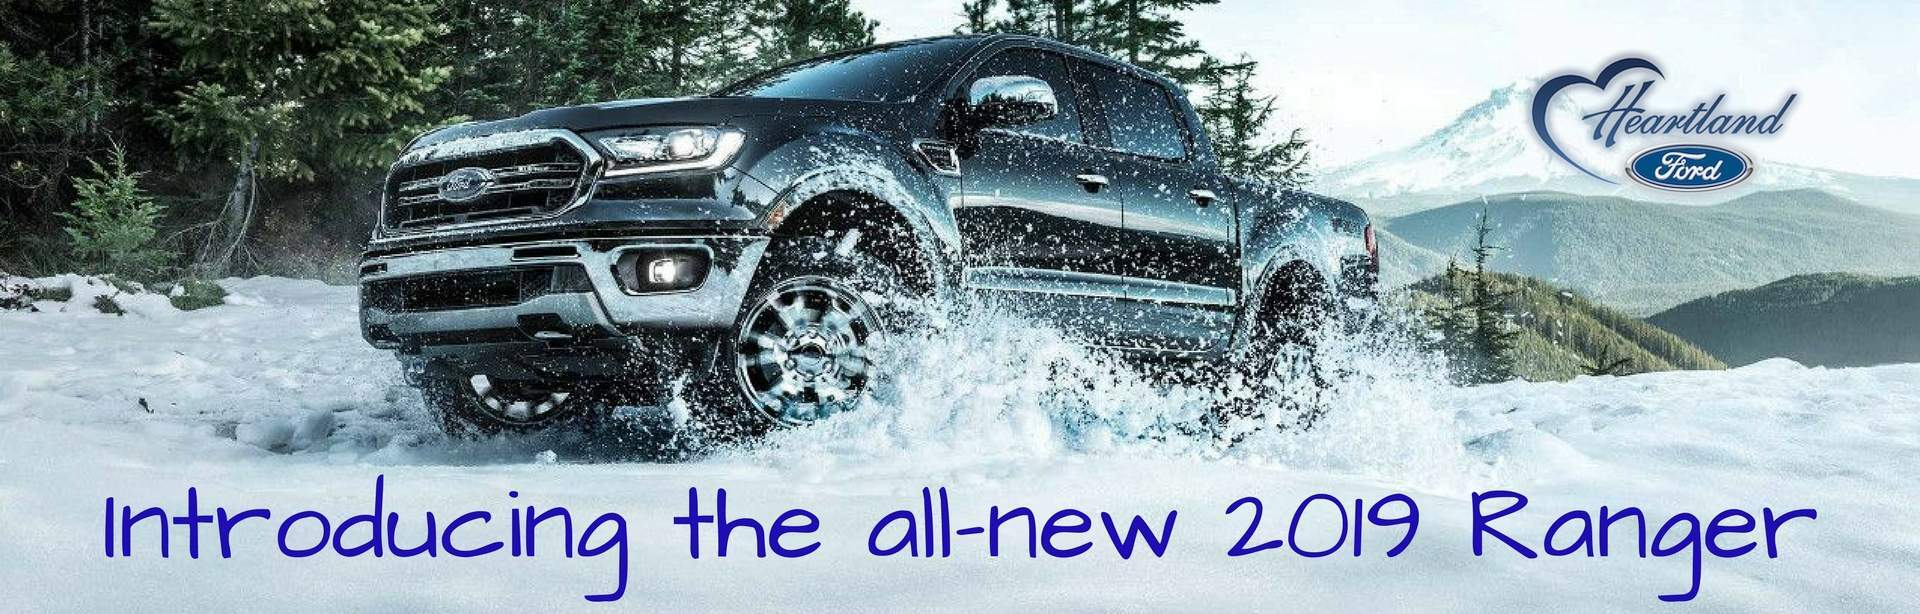 All-new 2019 Ranger Heartland Ford Sales